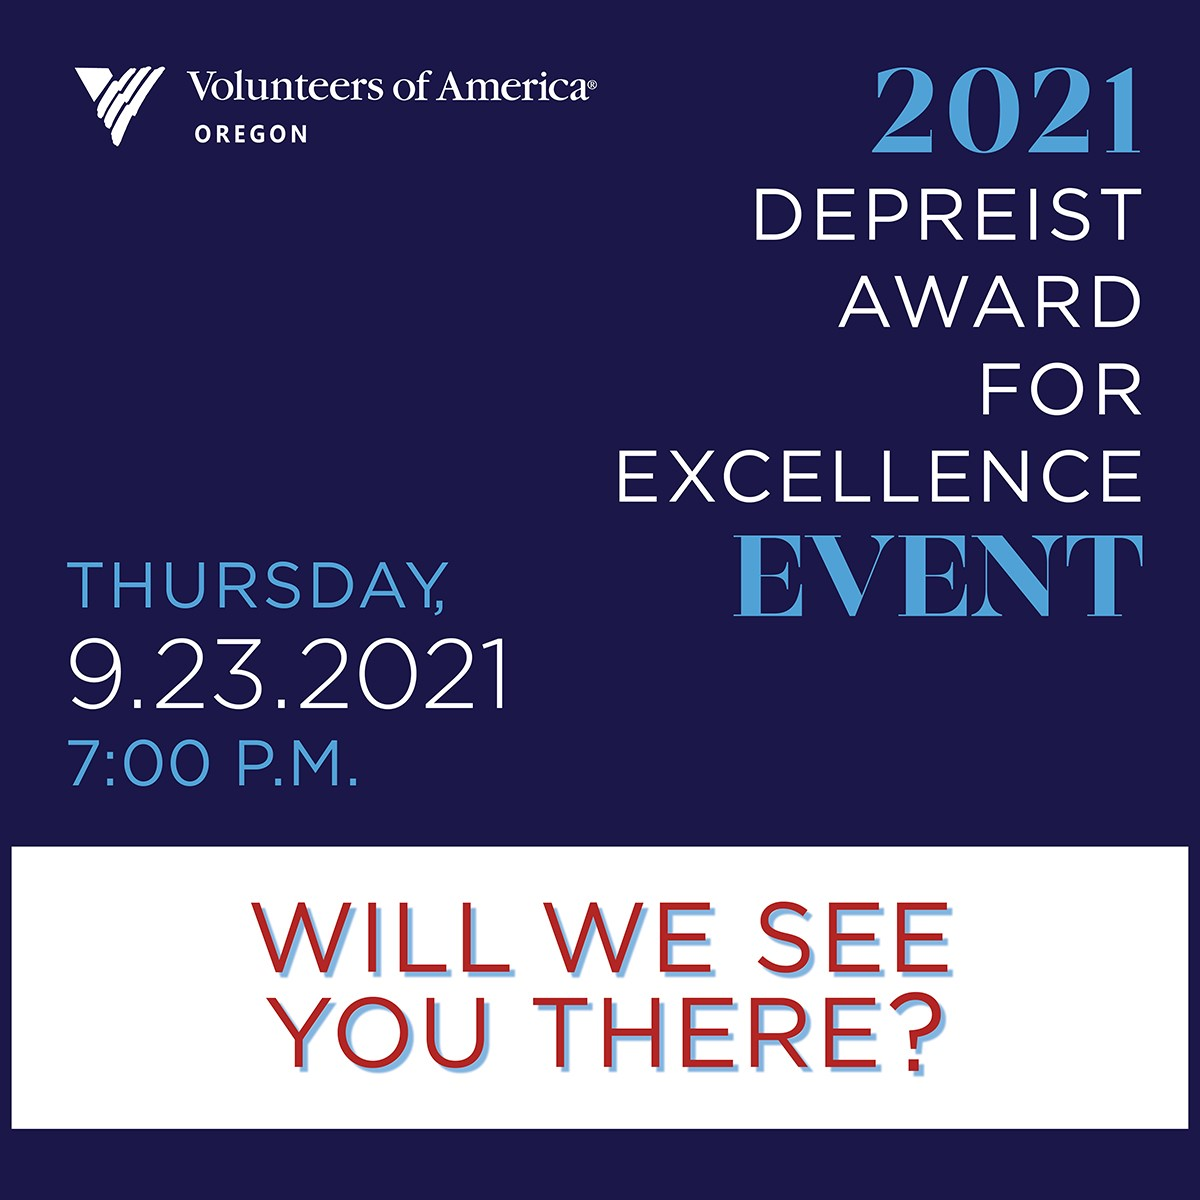 Will we see you there? Thursday 9/23/2021 7 PM